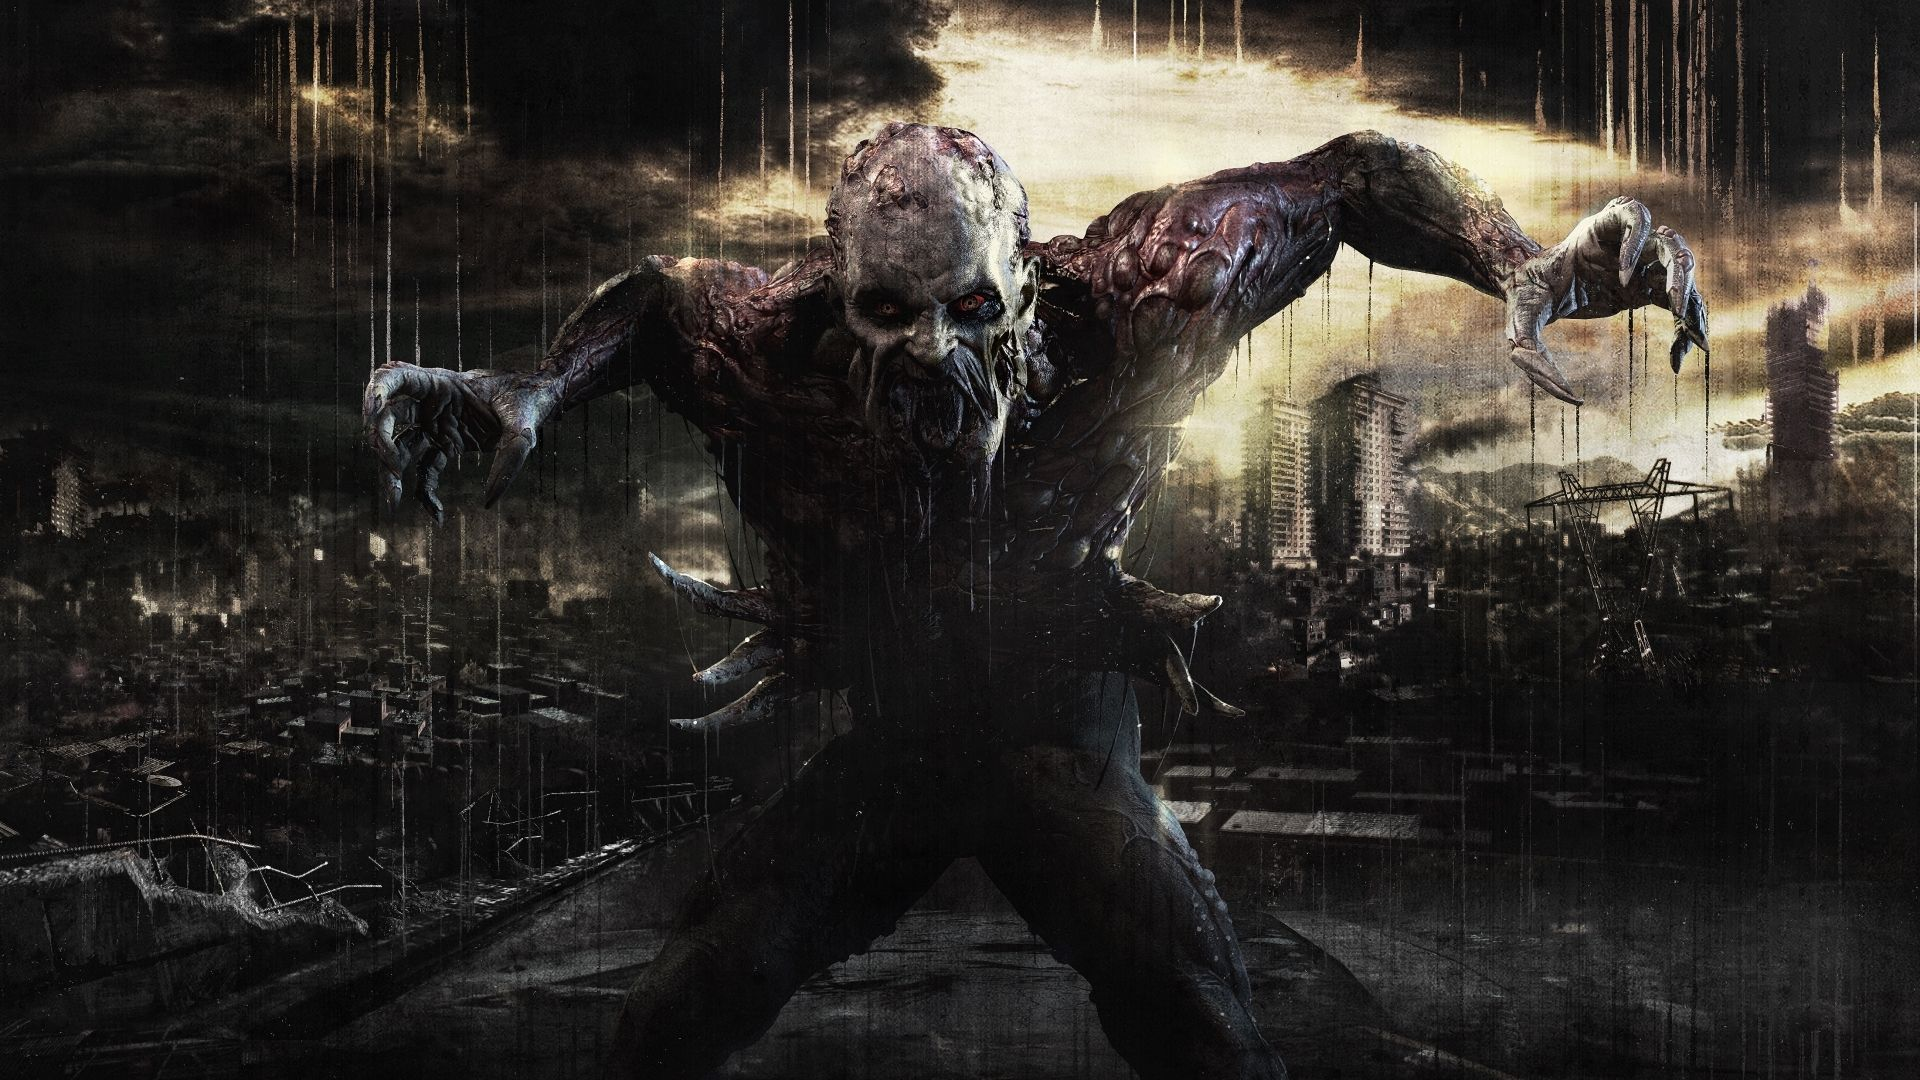 Dying Light Is As Expected A Much More Polished Version Of Dead Island  Along With A Huge Open World That You Will More Than Likely Become Very  Engrossed ...